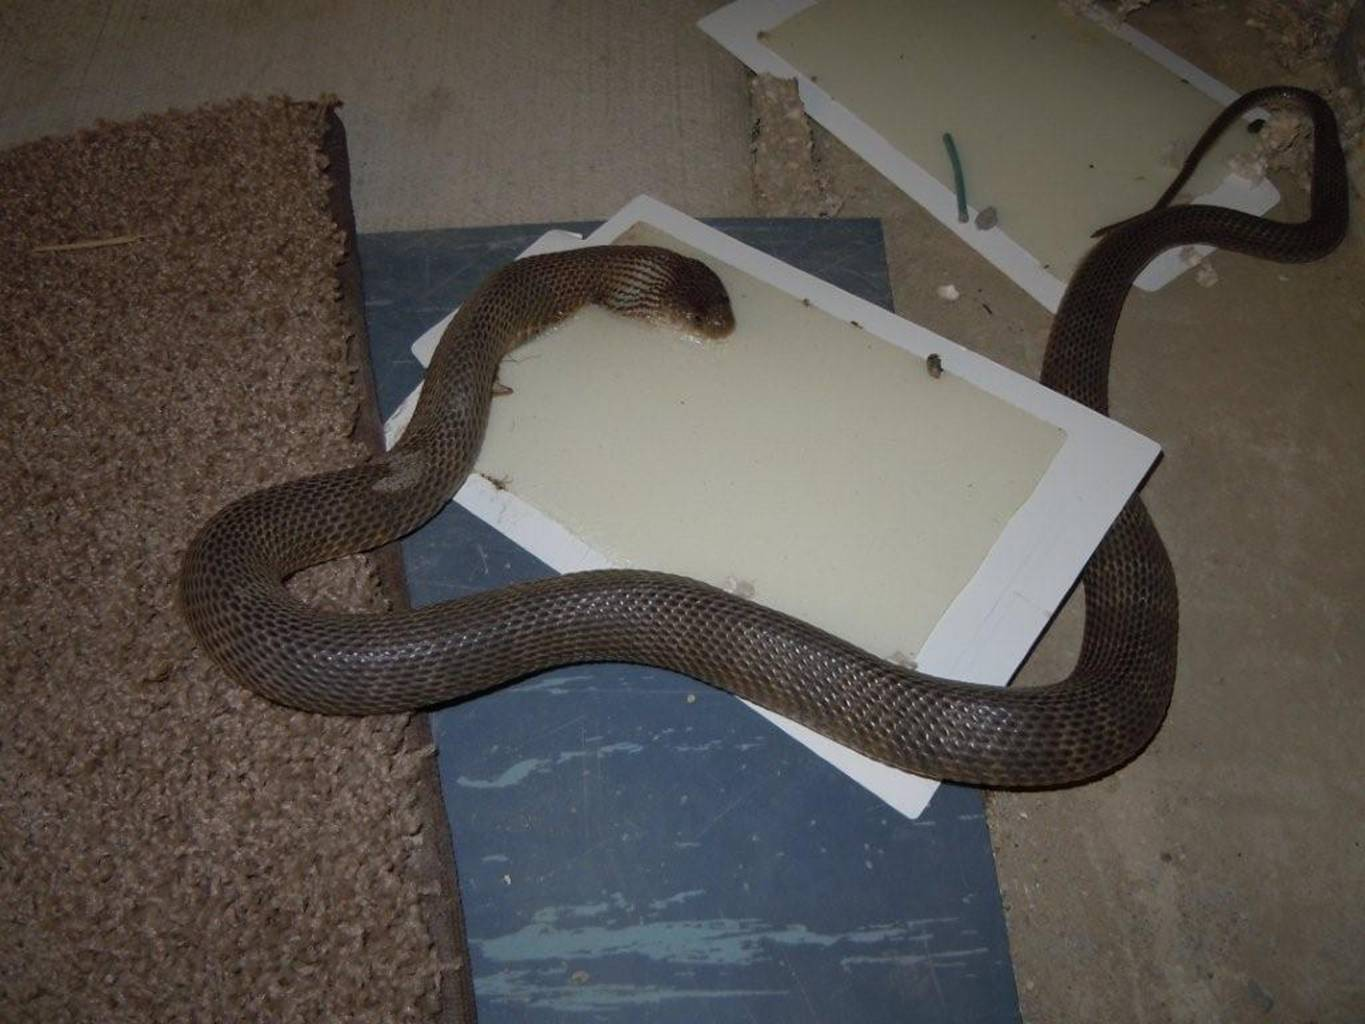 Imagine Waking Up To This Little Guy In Your ROOM Ducatiorg - Kitchen sink snake